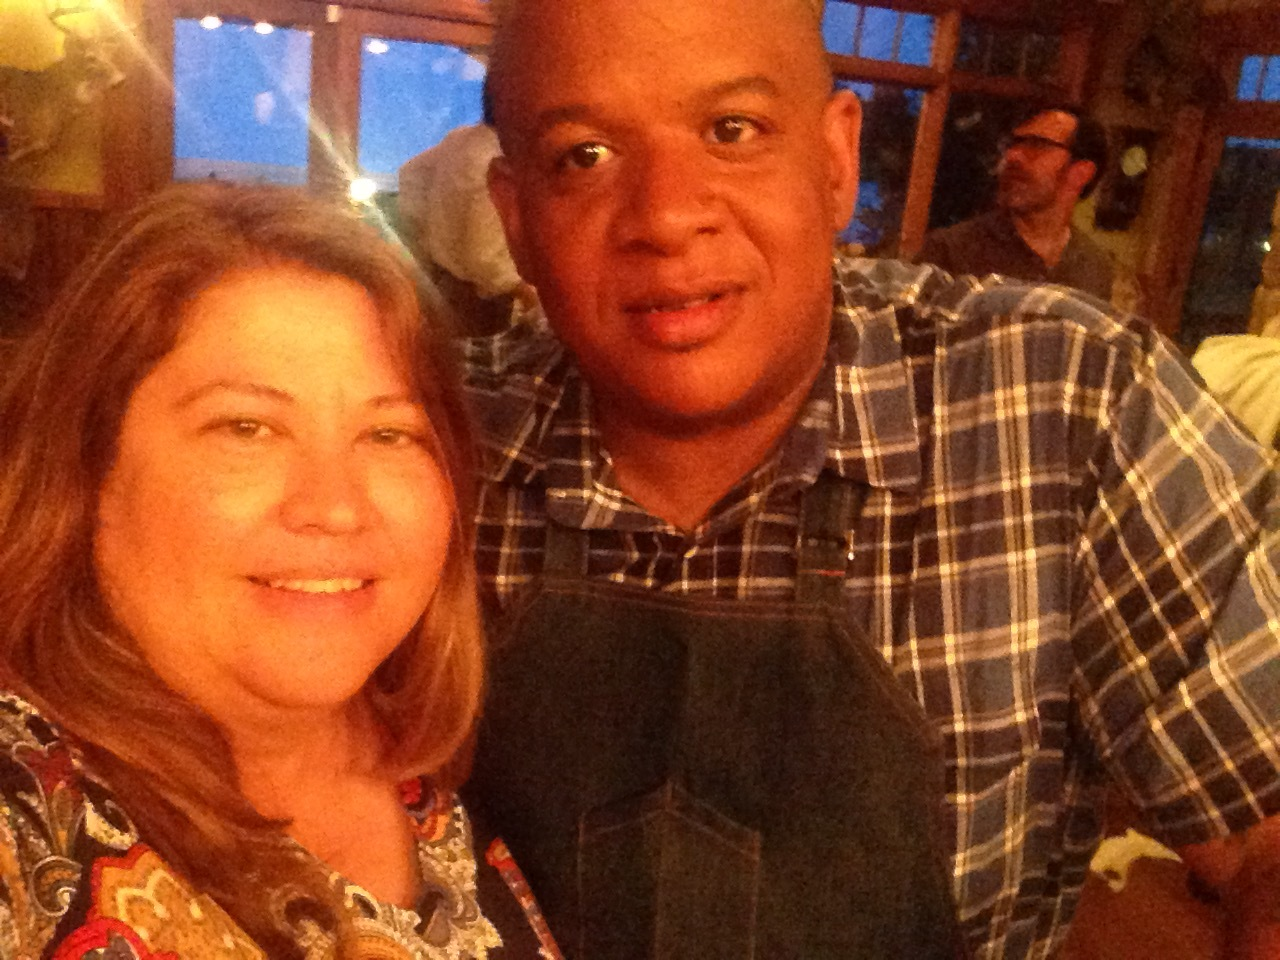 That's me taking my selfie with Chef Todd Richards